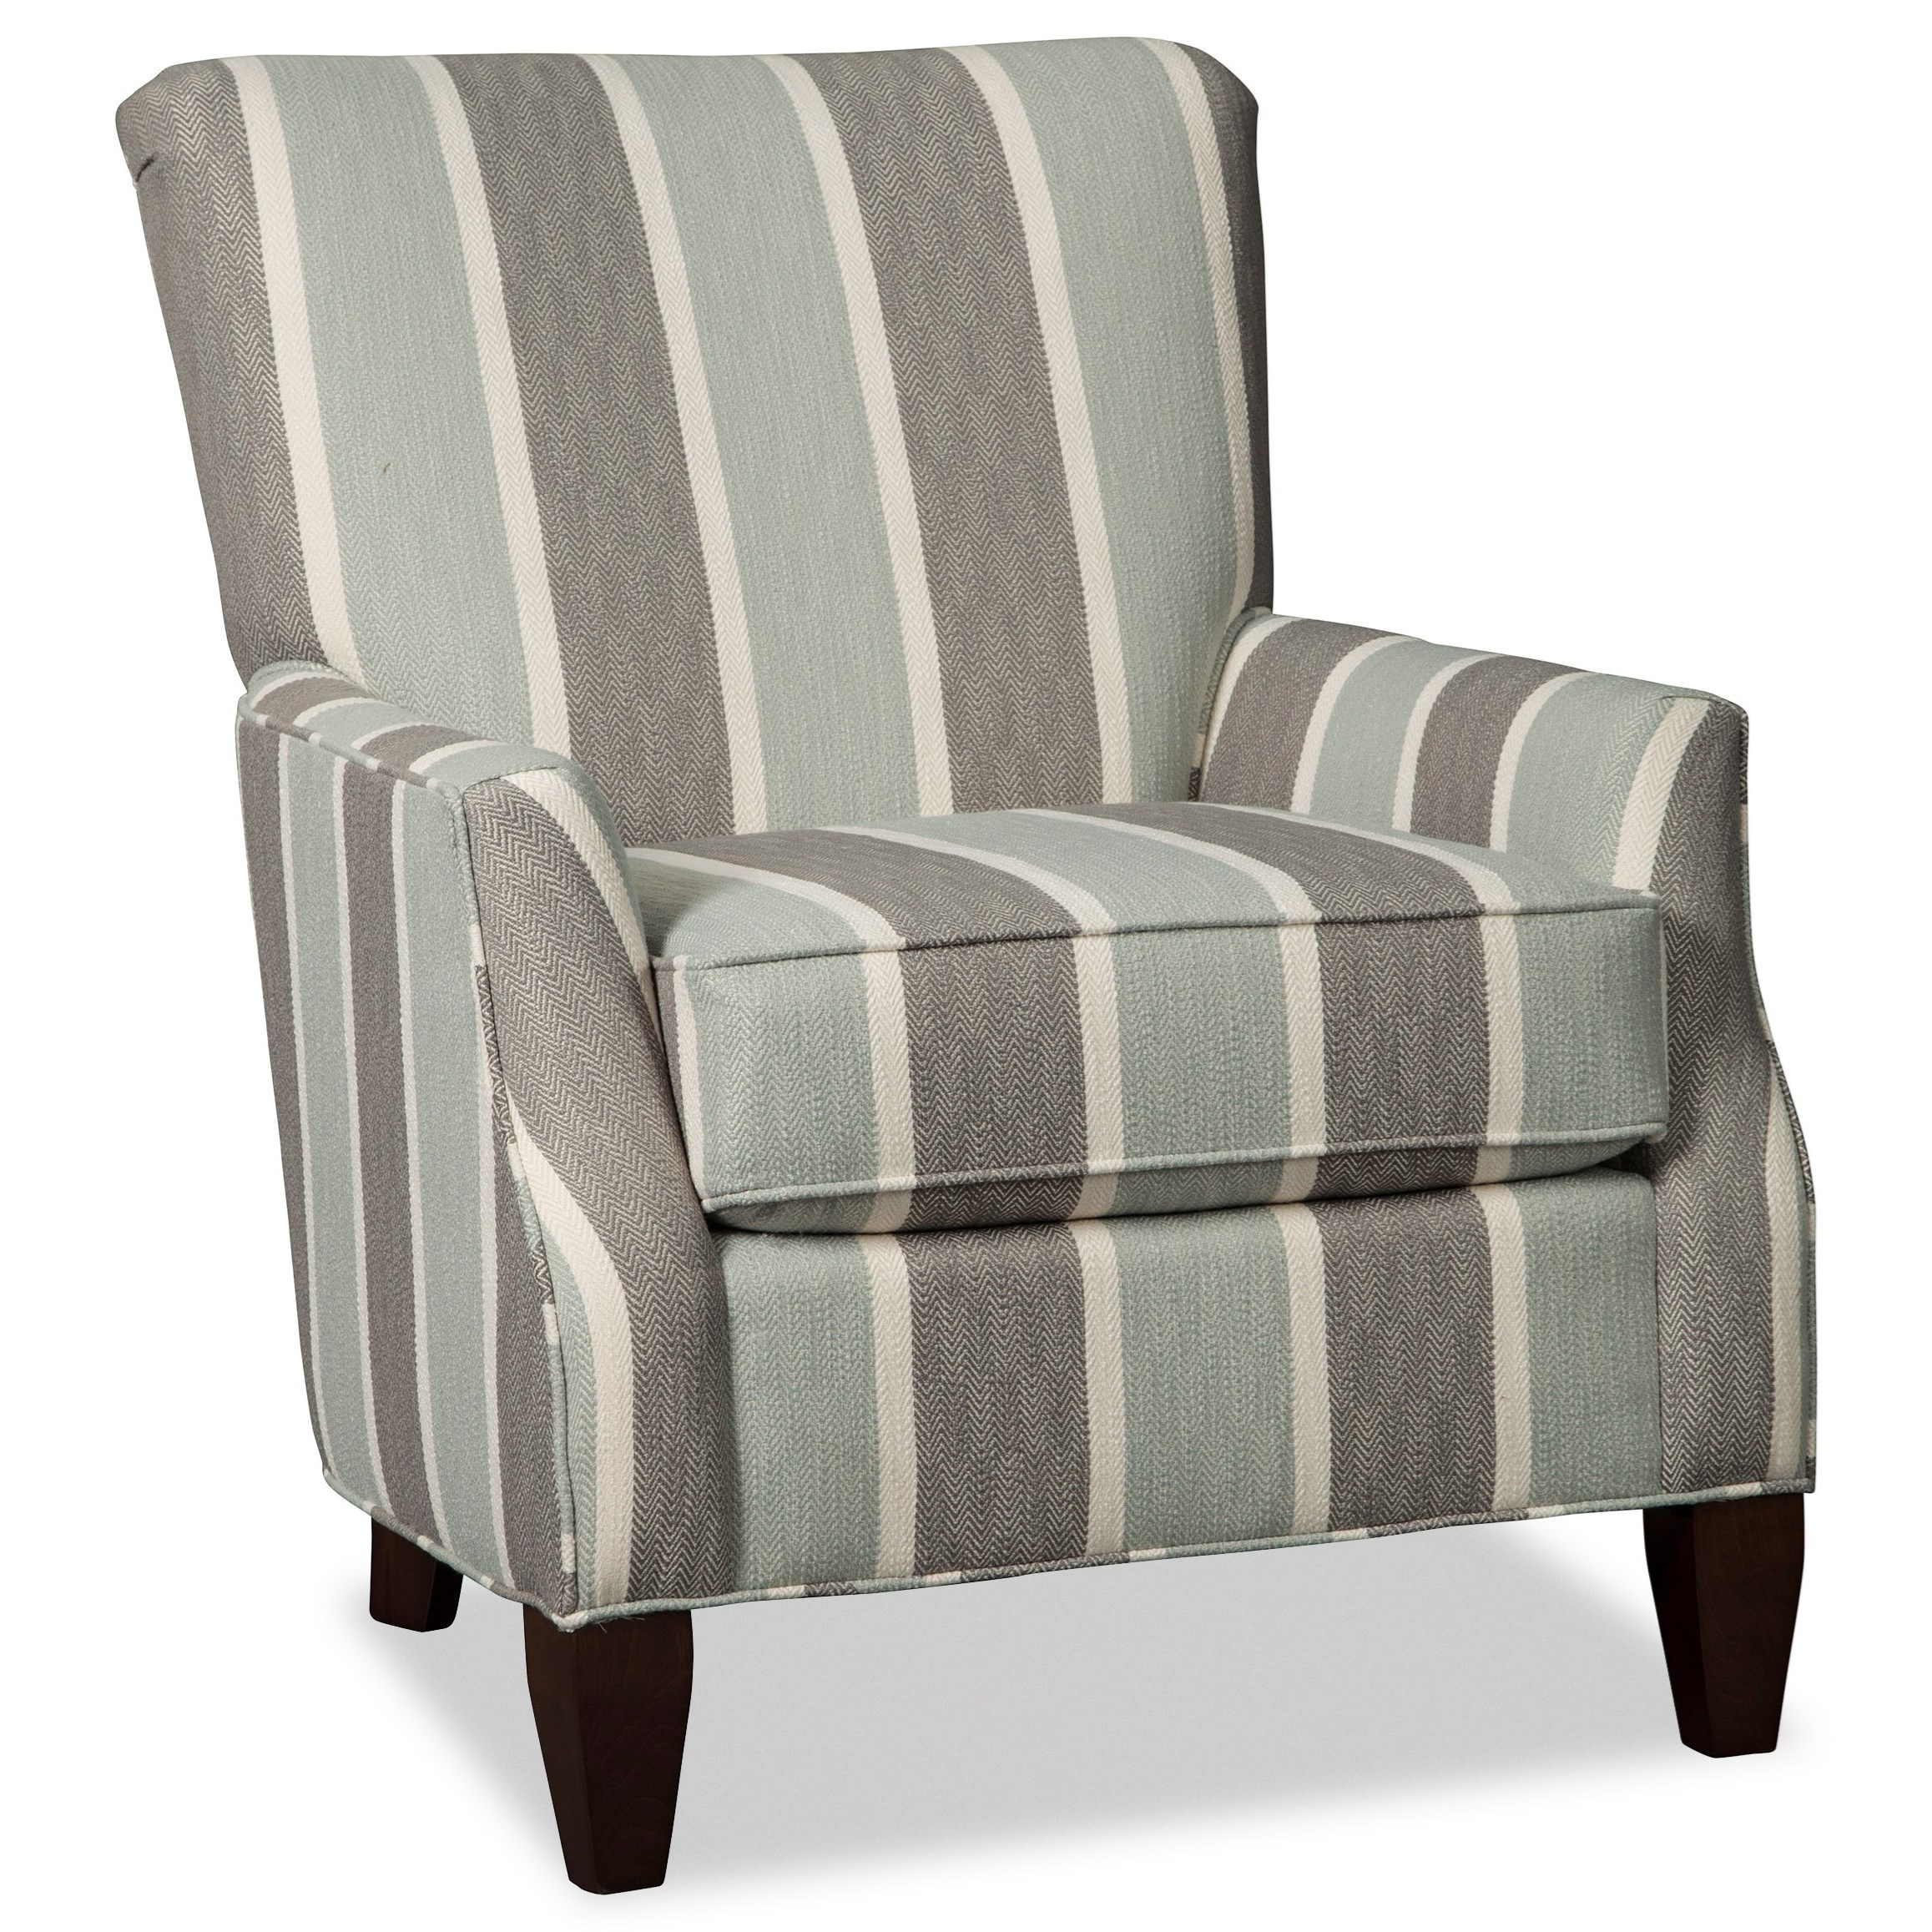 Tremendous Accent Chairs Contemporary Chair With Flair Tapered Arms By Craftmaster At Dean Boslers Squirreltailoven Fun Painted Chair Ideas Images Squirreltailovenorg